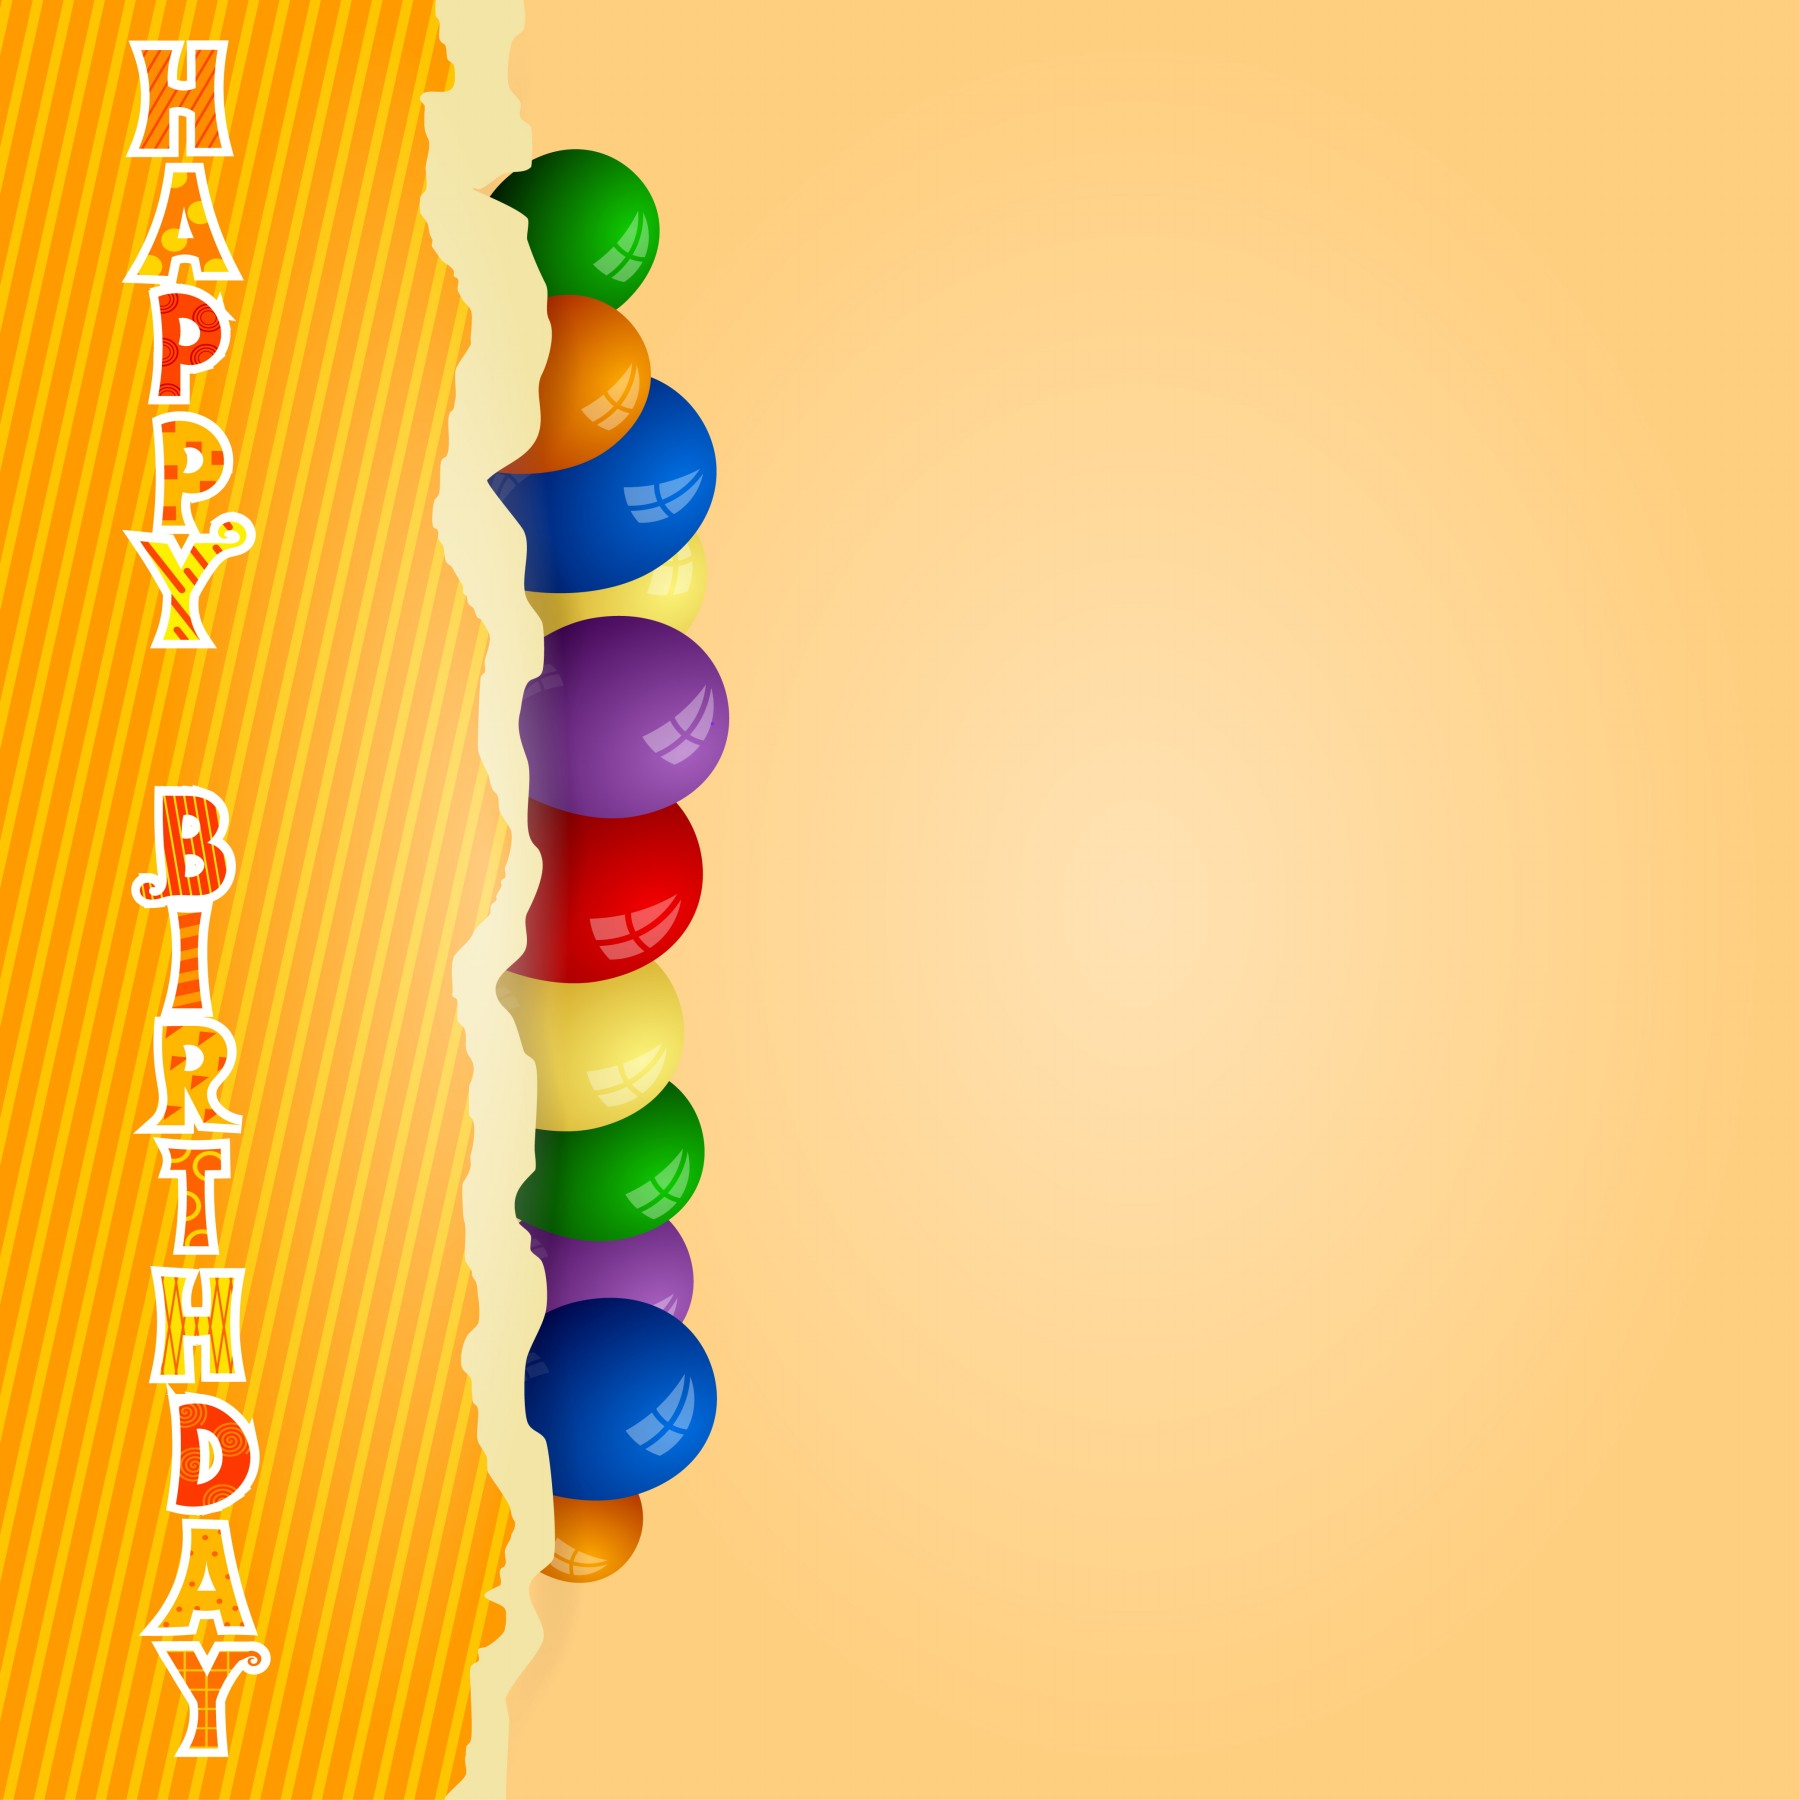 background images for birthday greetings ; colorful-balls-image-hd-1